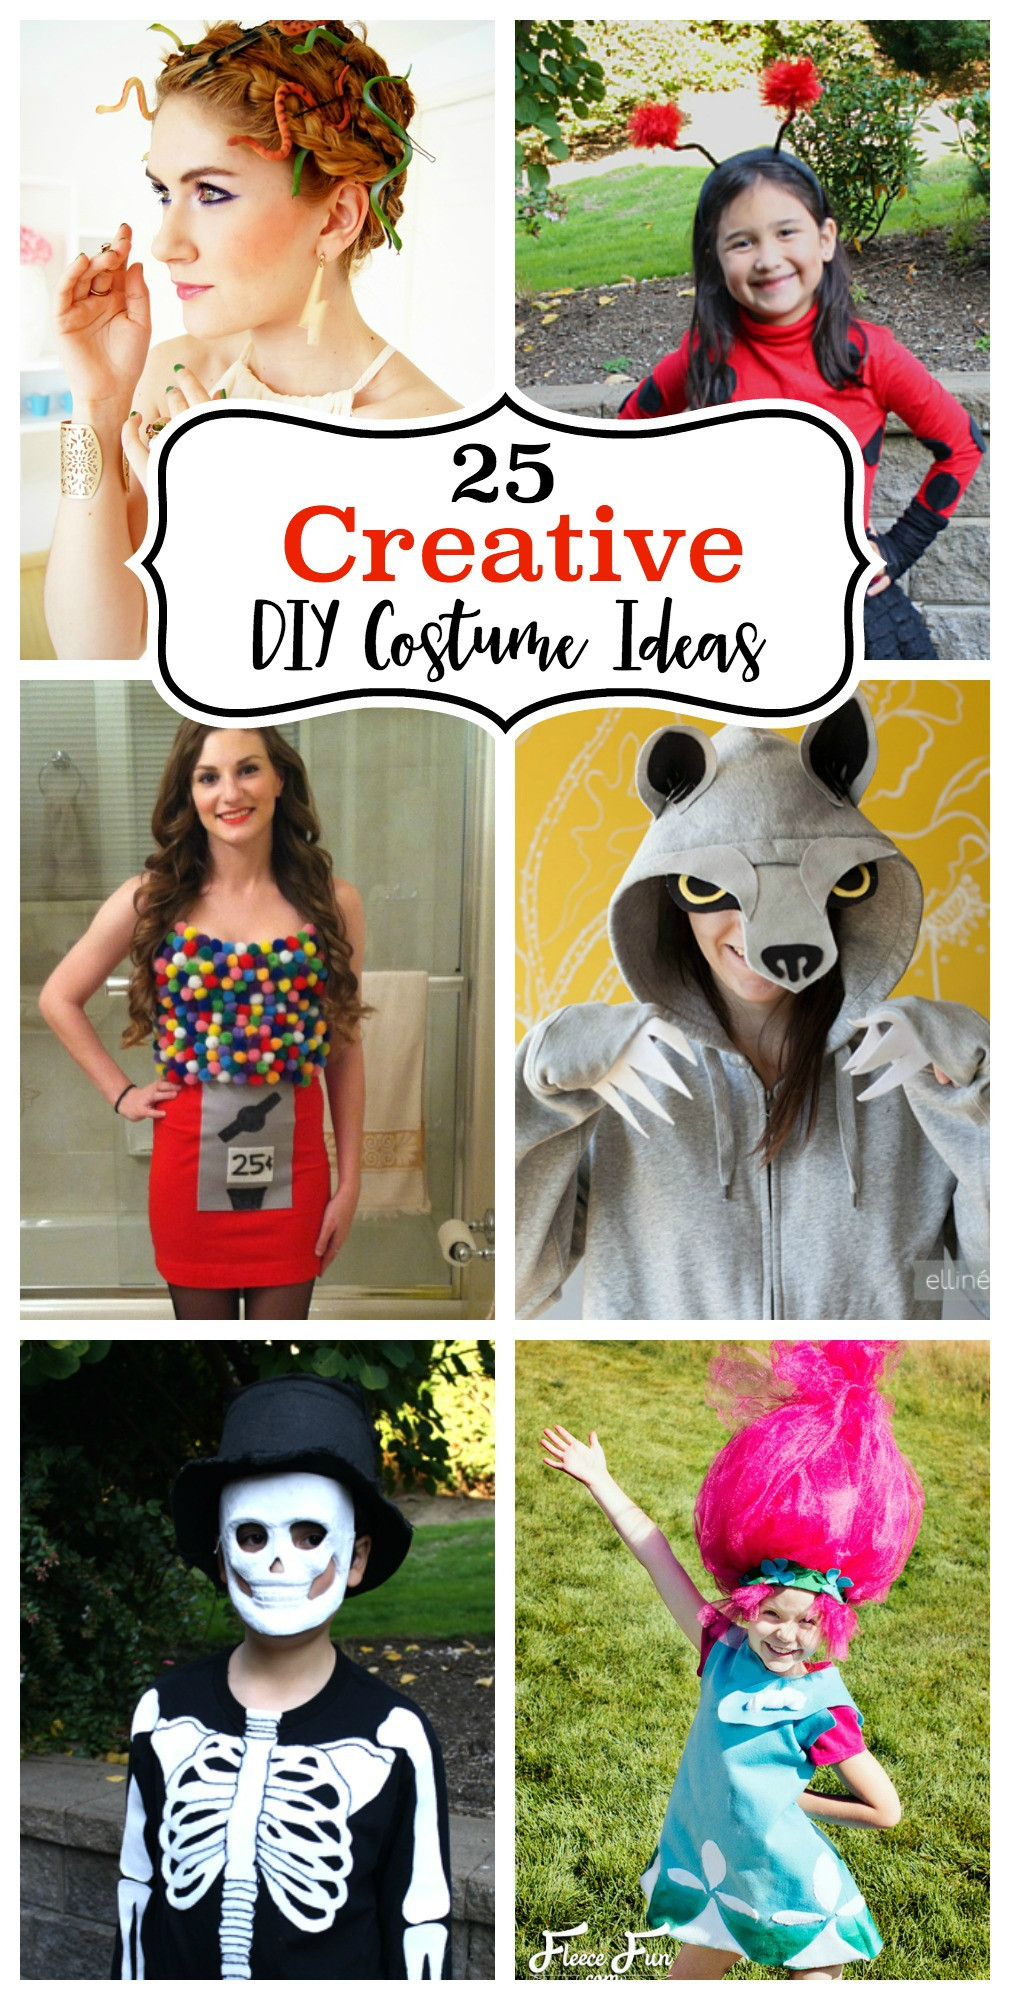 Best ideas about Creative DIY Costume . Save or Pin 25 Creative DIY Costume Ideas Now.